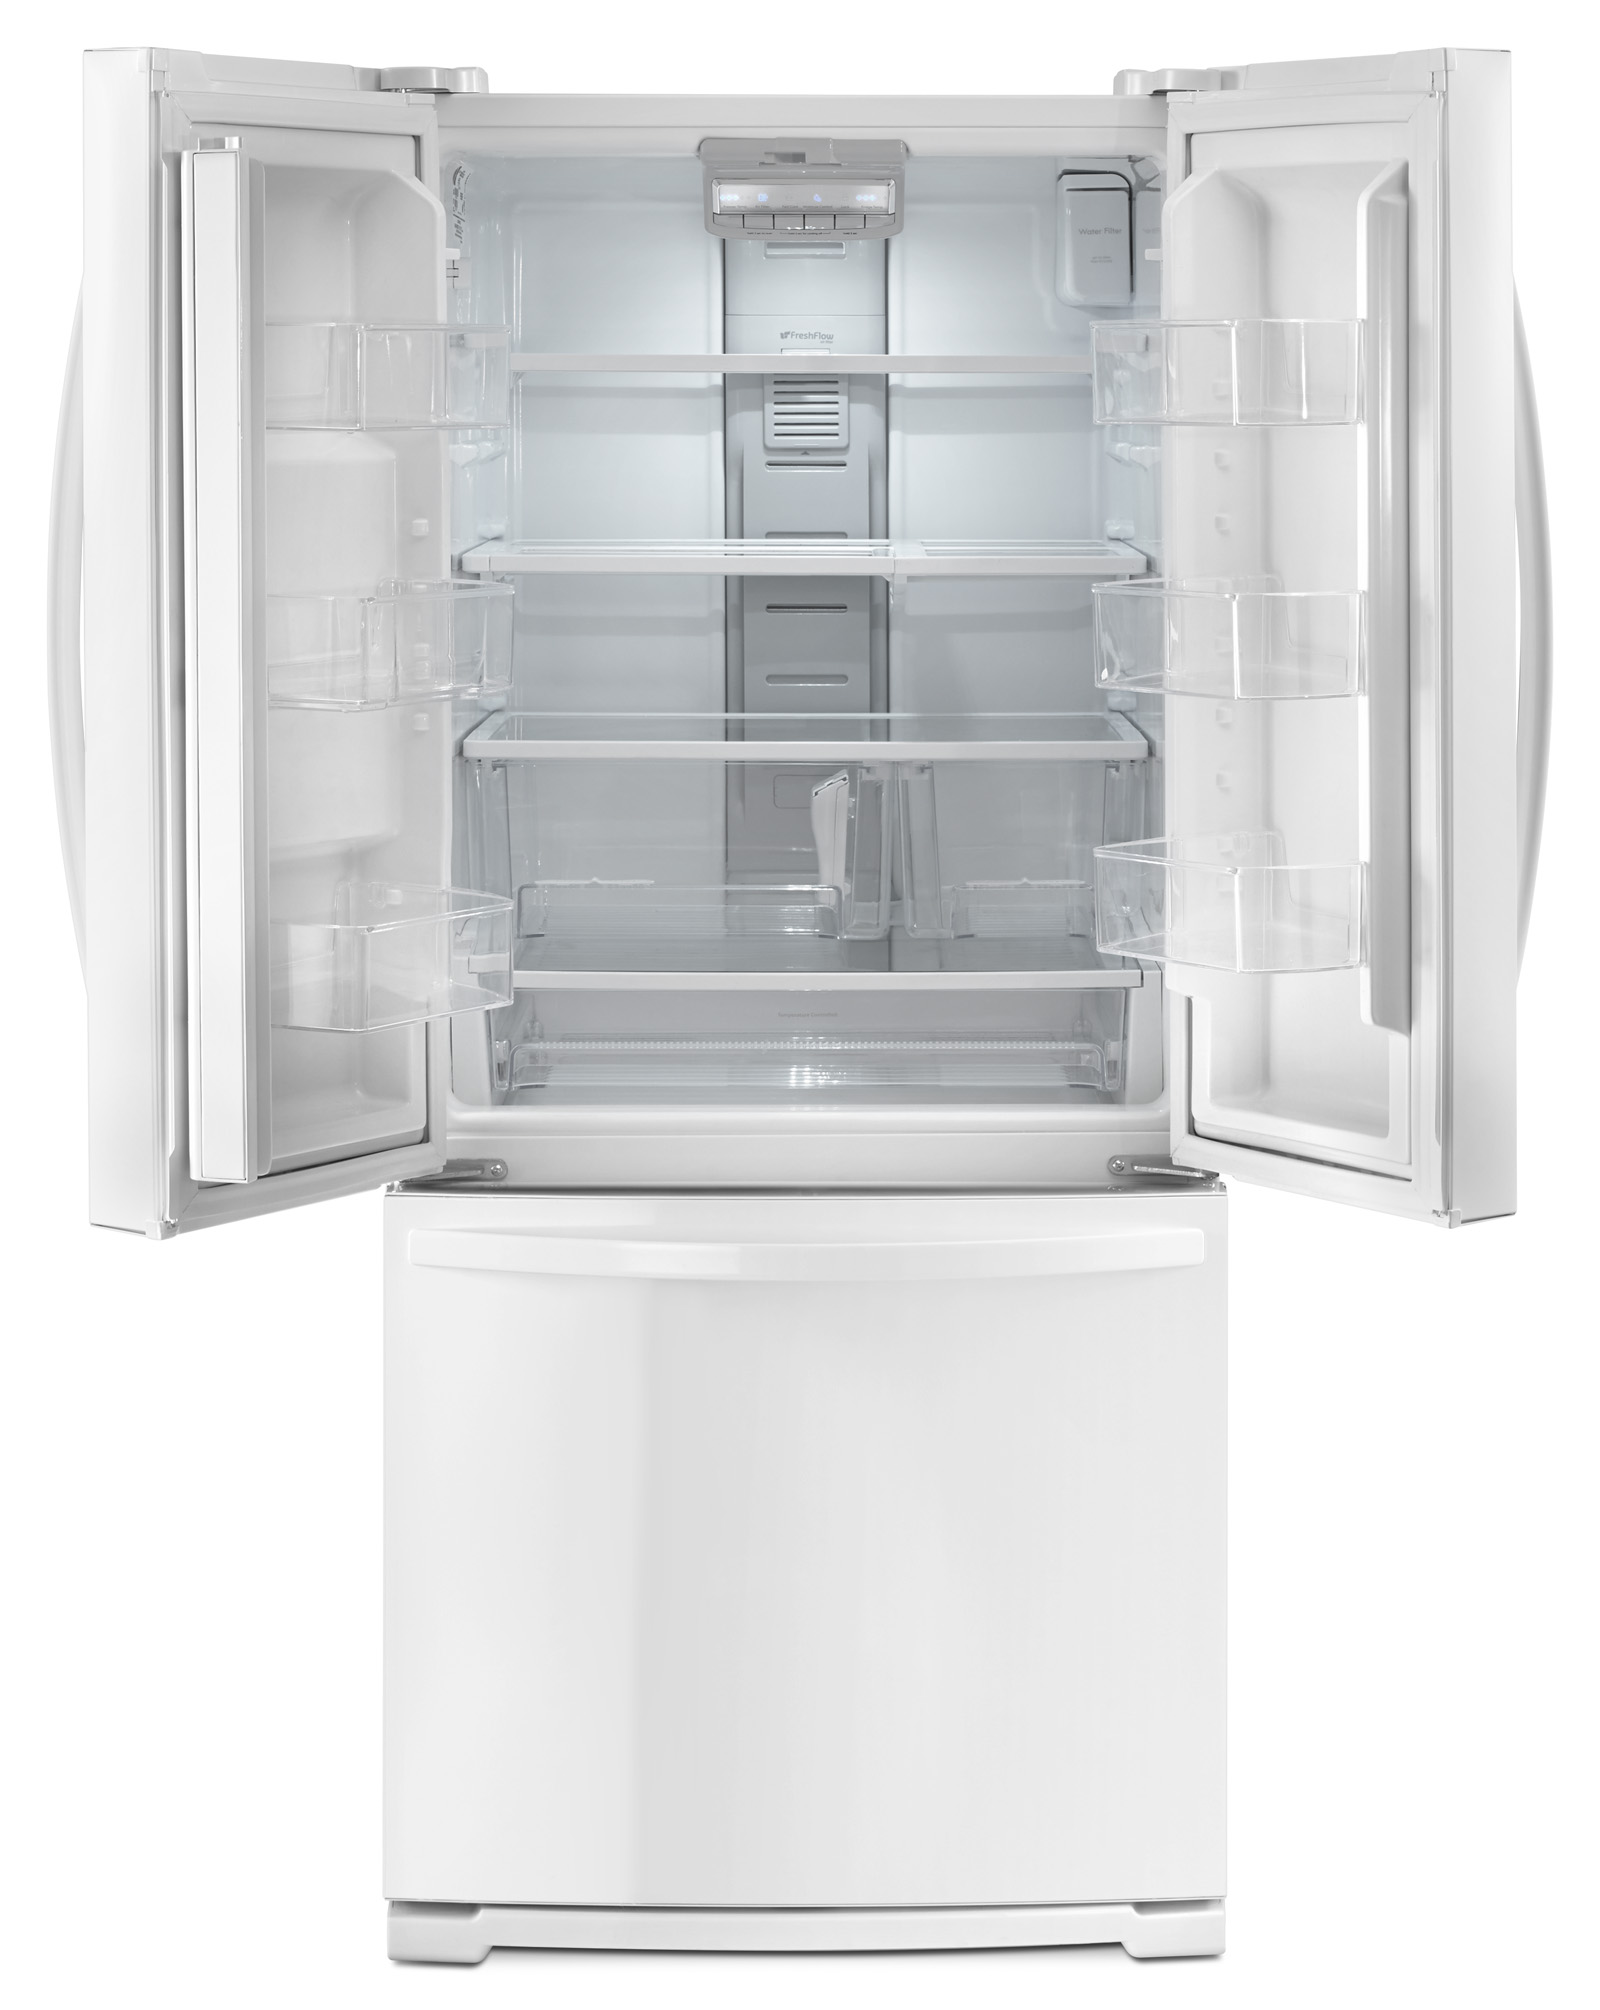 Kenmore 73002 19.5 cu. ft. Bottom Freezer Refrigerator - White